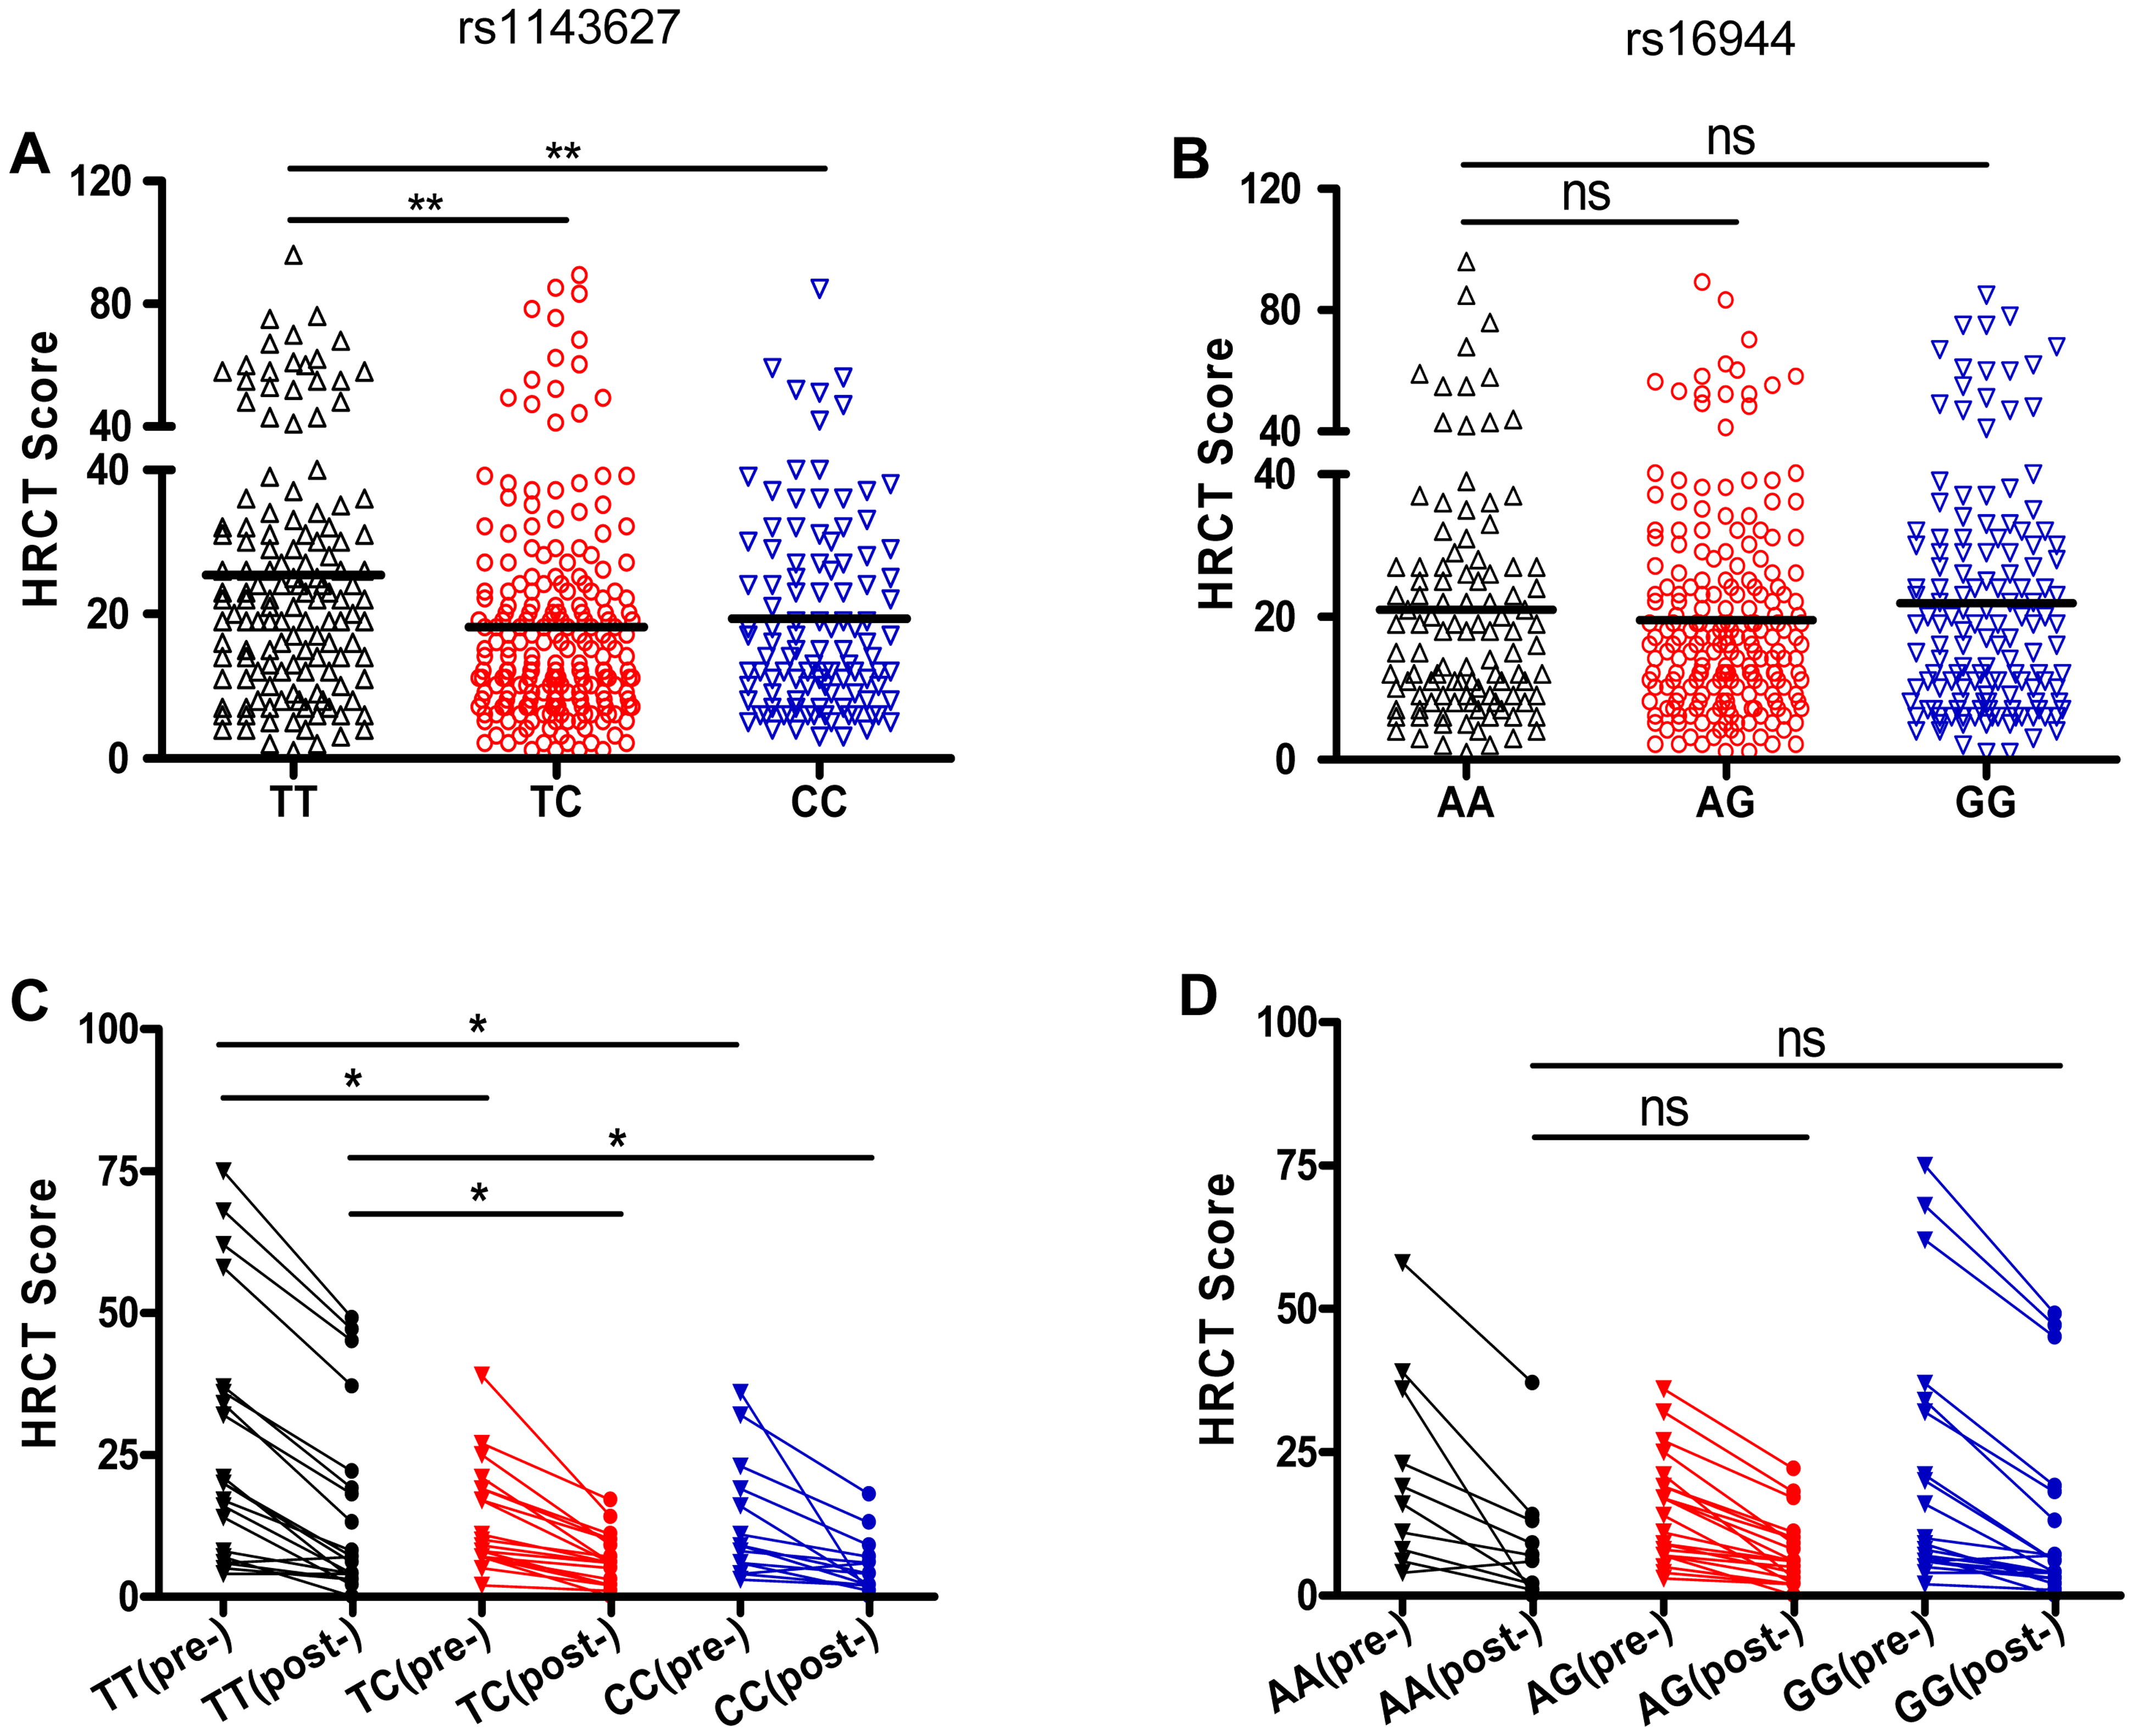 SNP rs1143627 is associated with the severity of pulmonary TB disease.